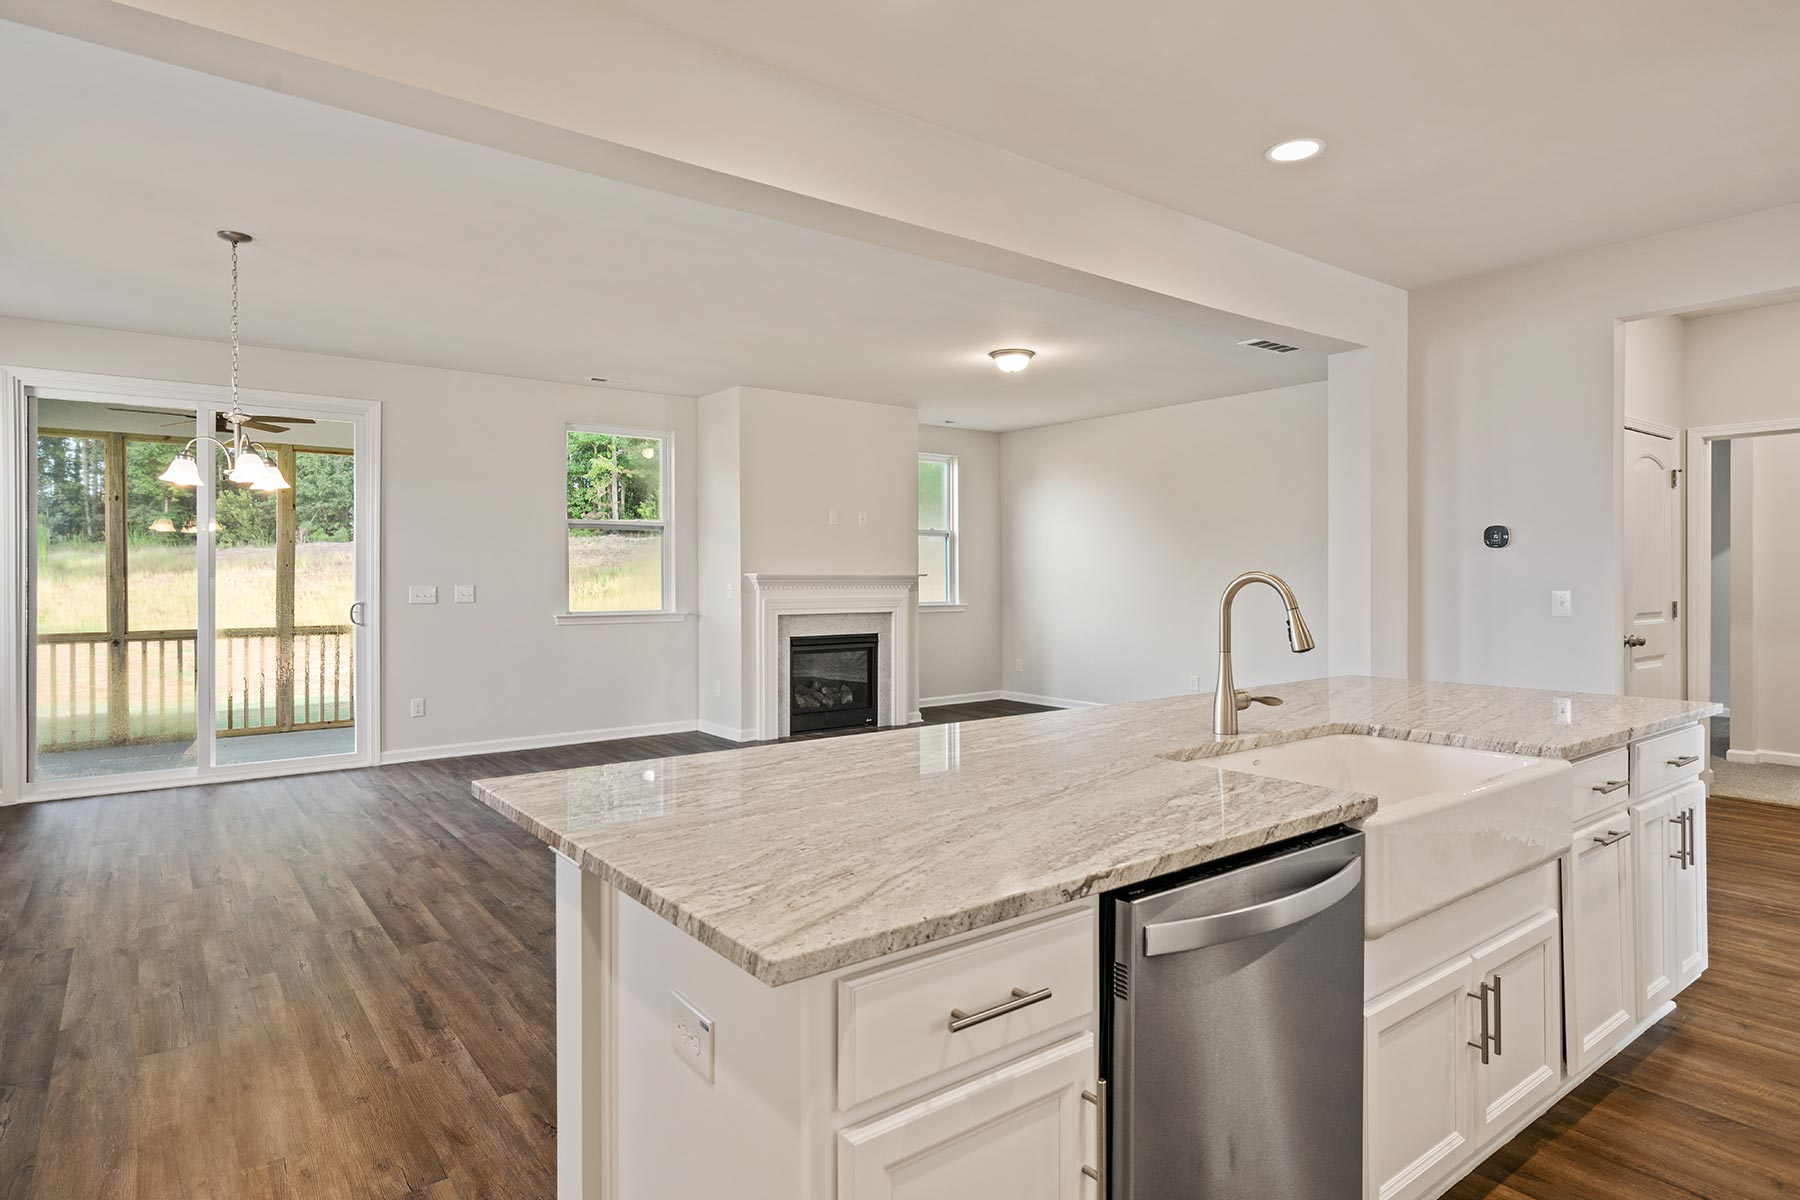 Winston Plan Kitchen at Ballentine Place in Holly Springs North Carolina by Mattamy Homes